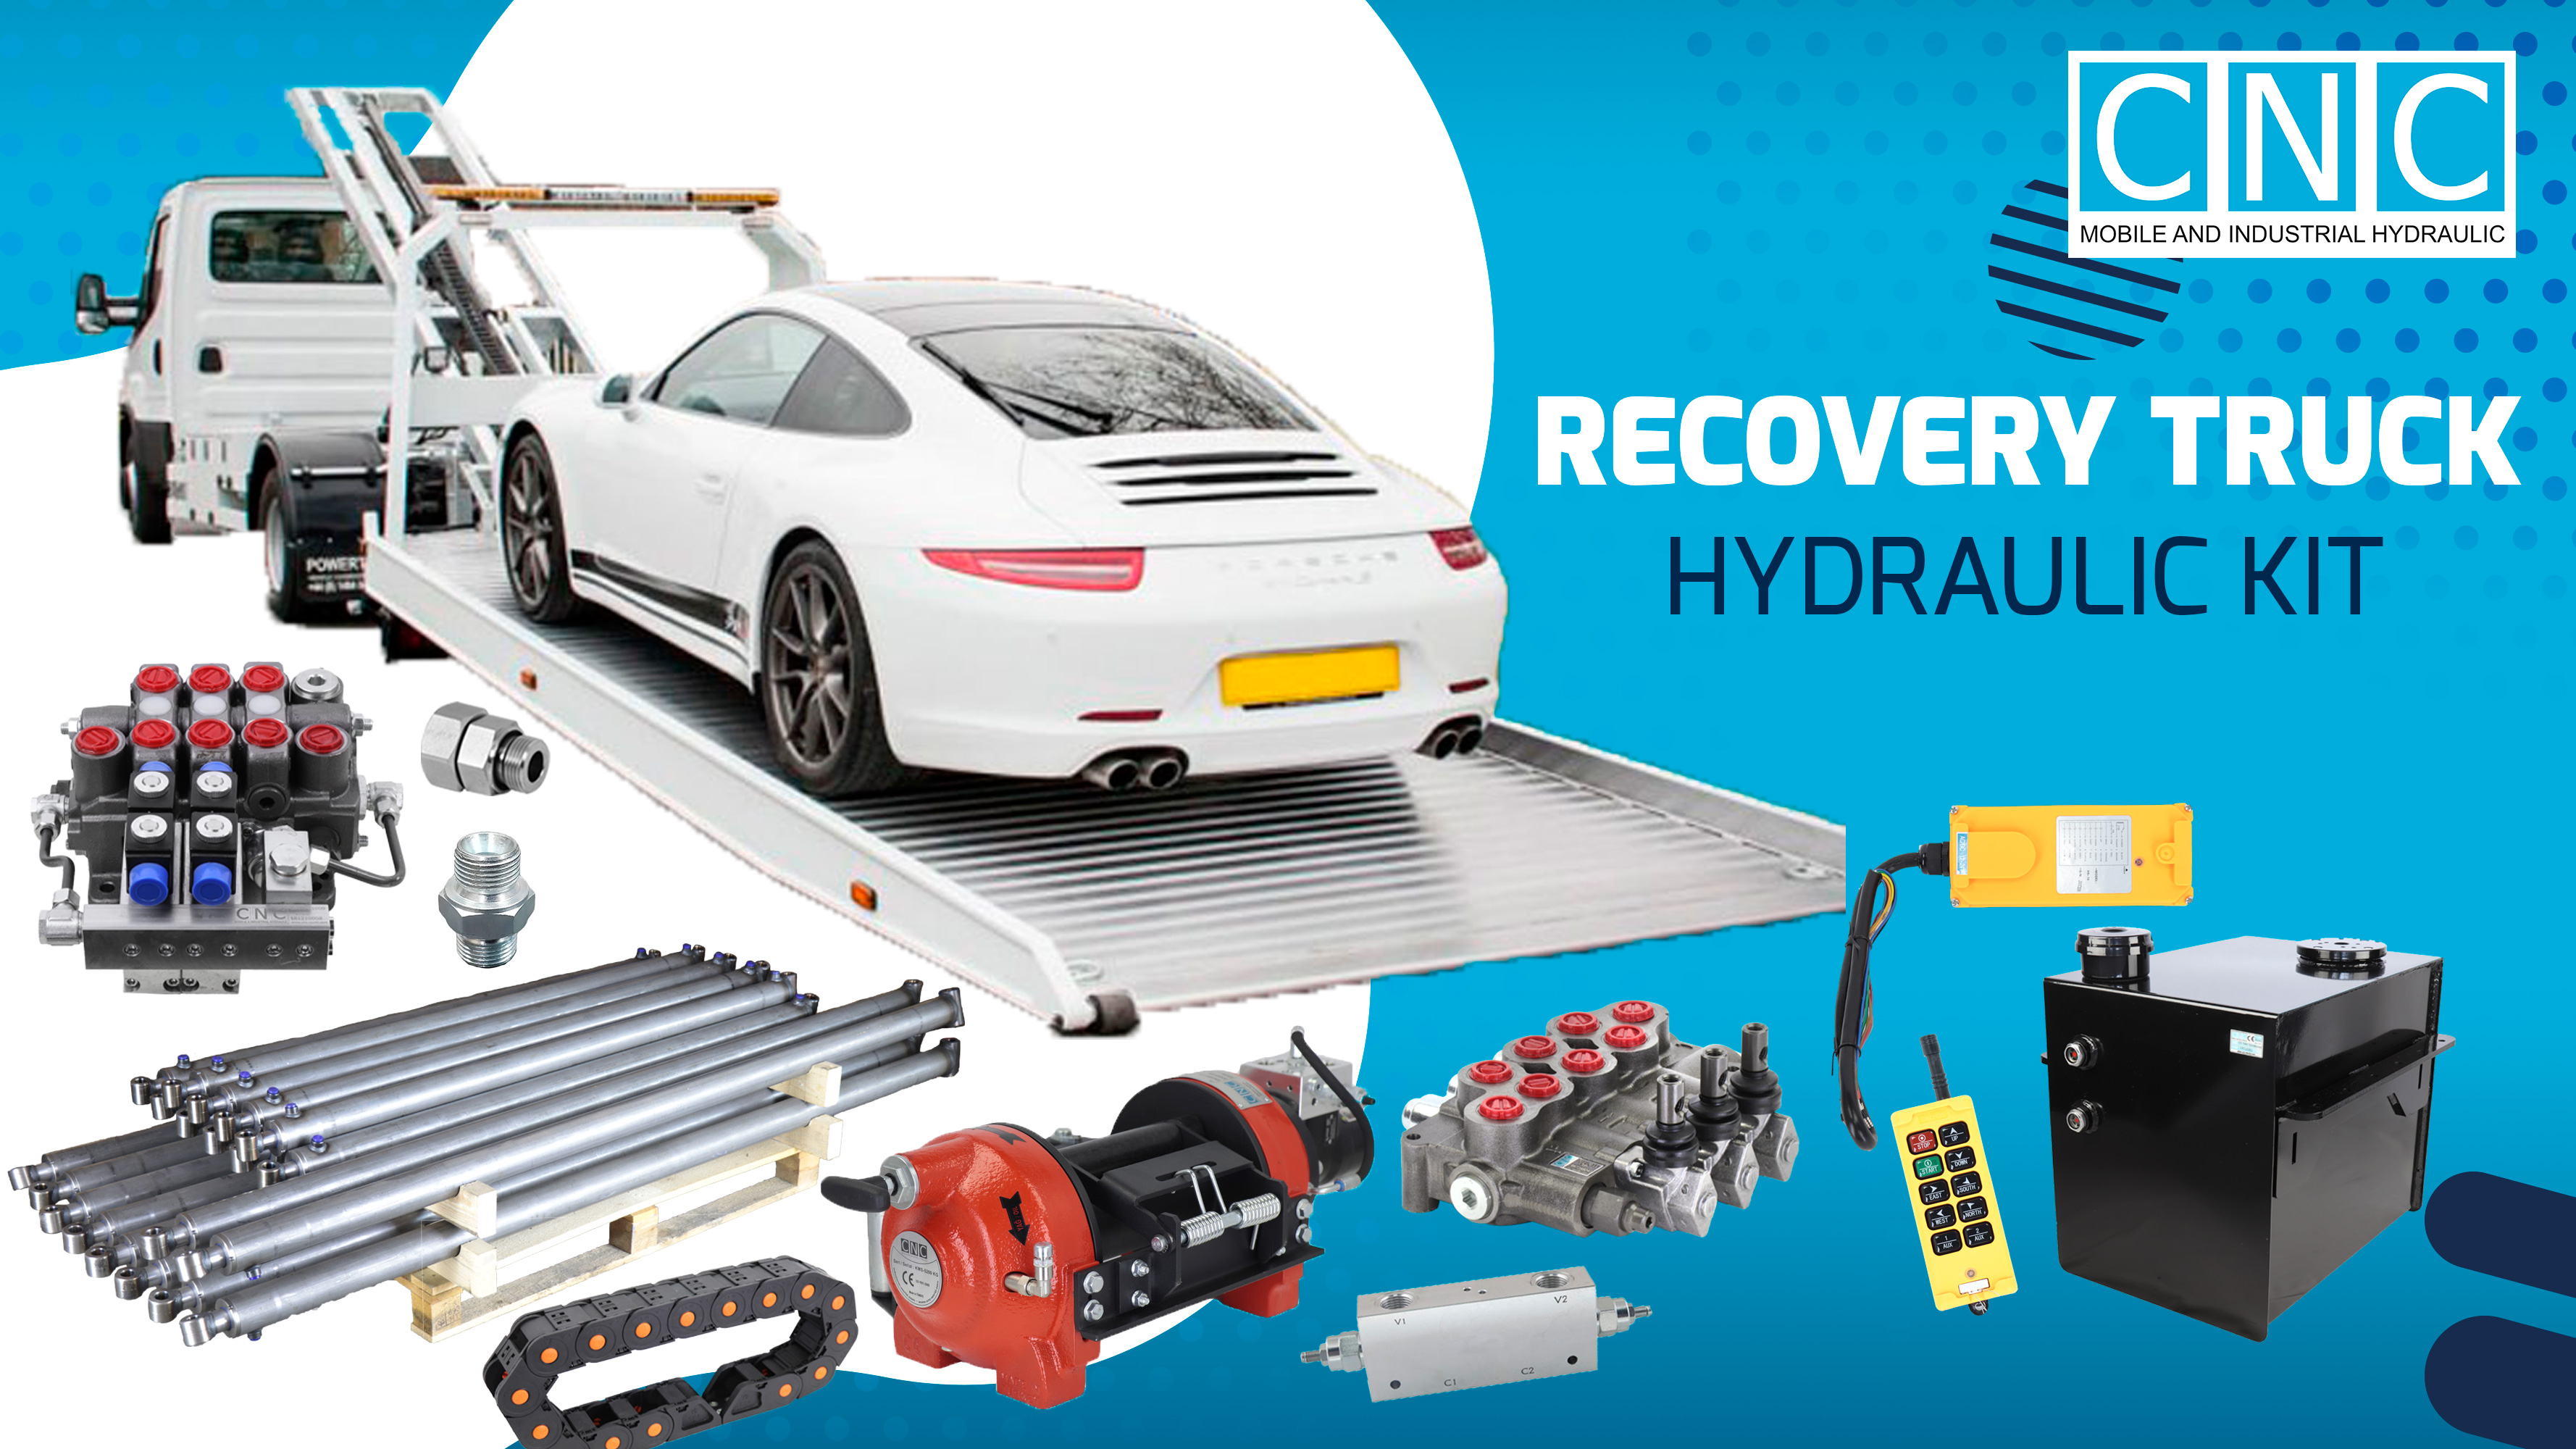 Recovery Truck Hydraulic Kit